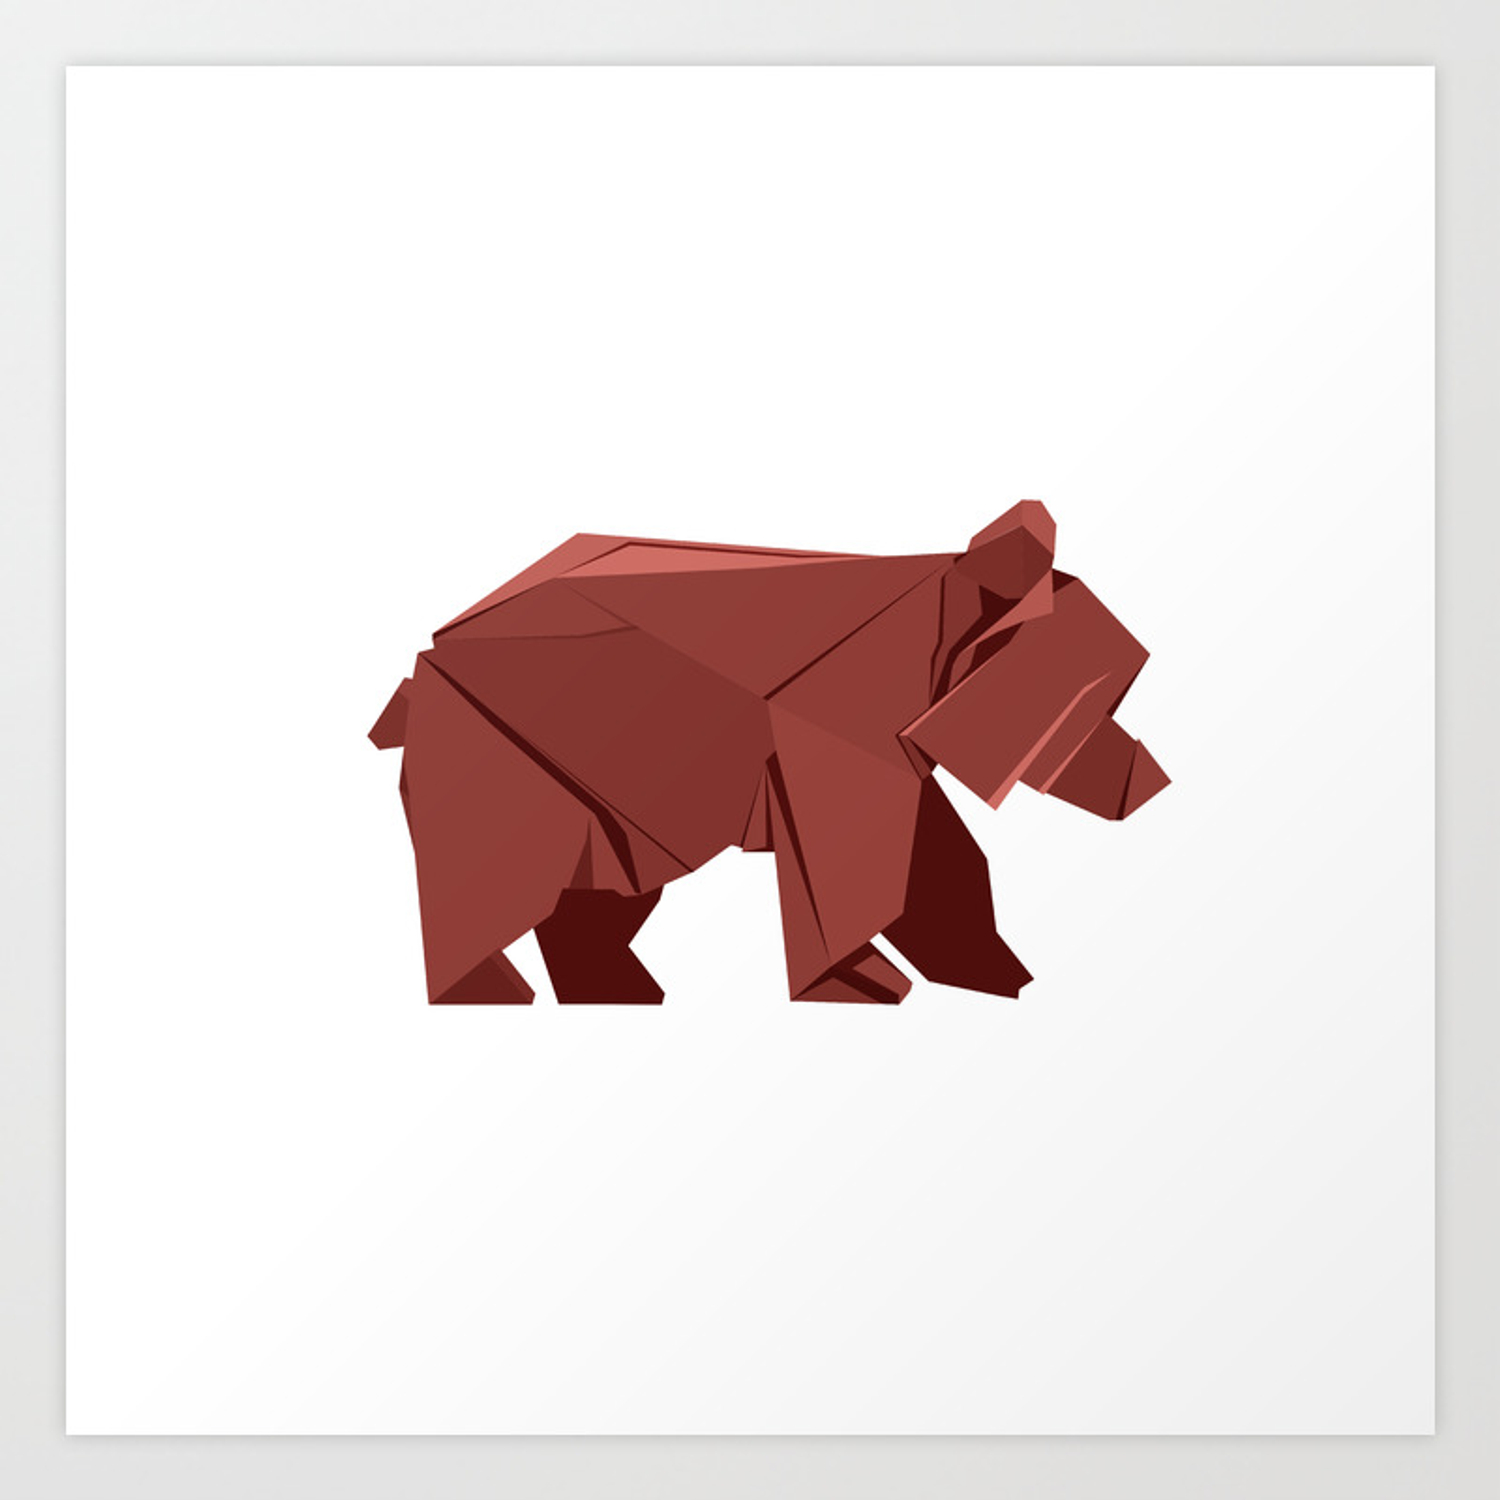 Origami bear instructions | Step by step instructions how to make ... | 1500x1500